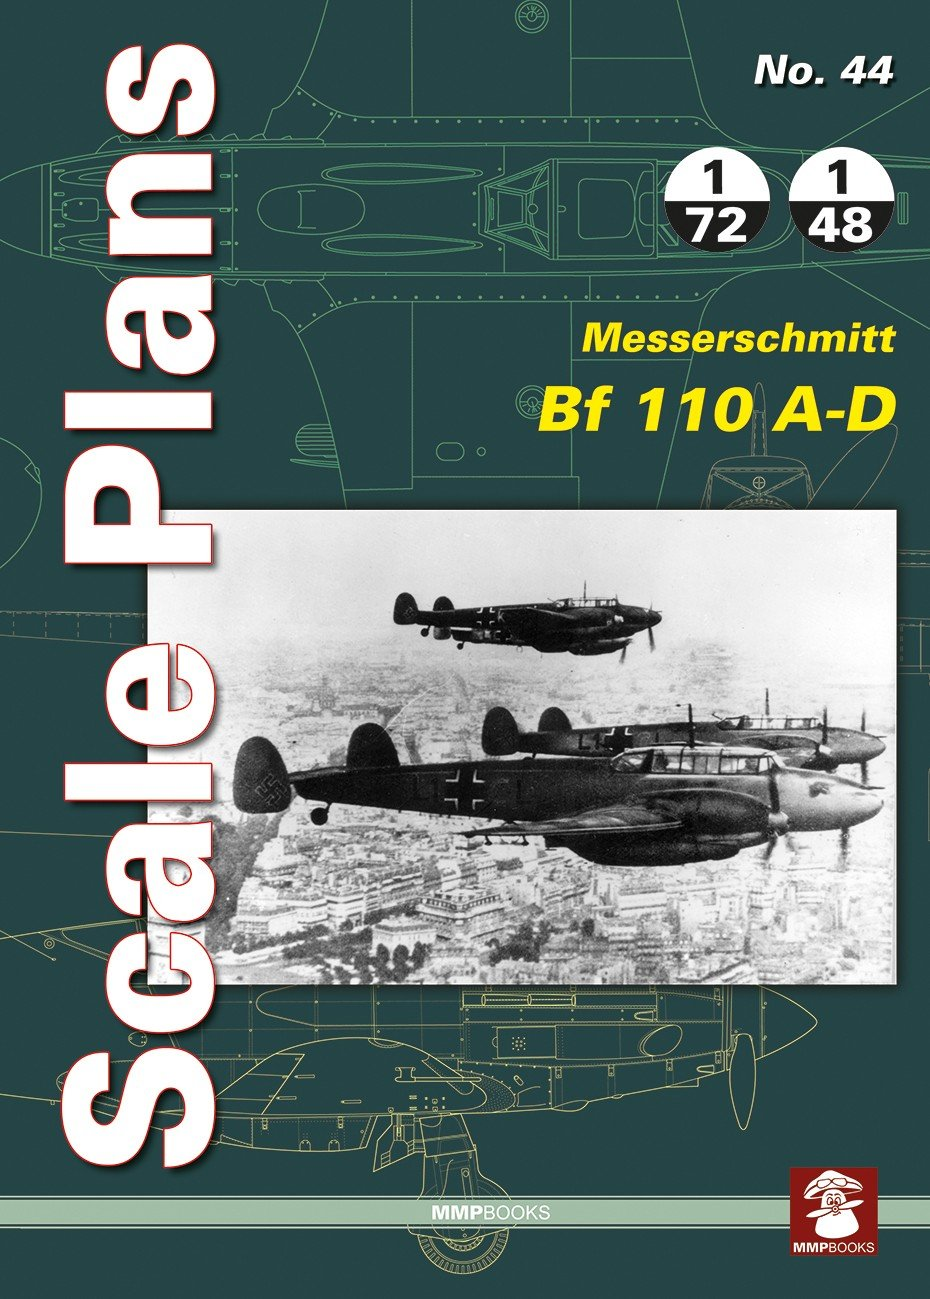 Scale Plans No. 44 Messerschmitt Bf 110 A-D